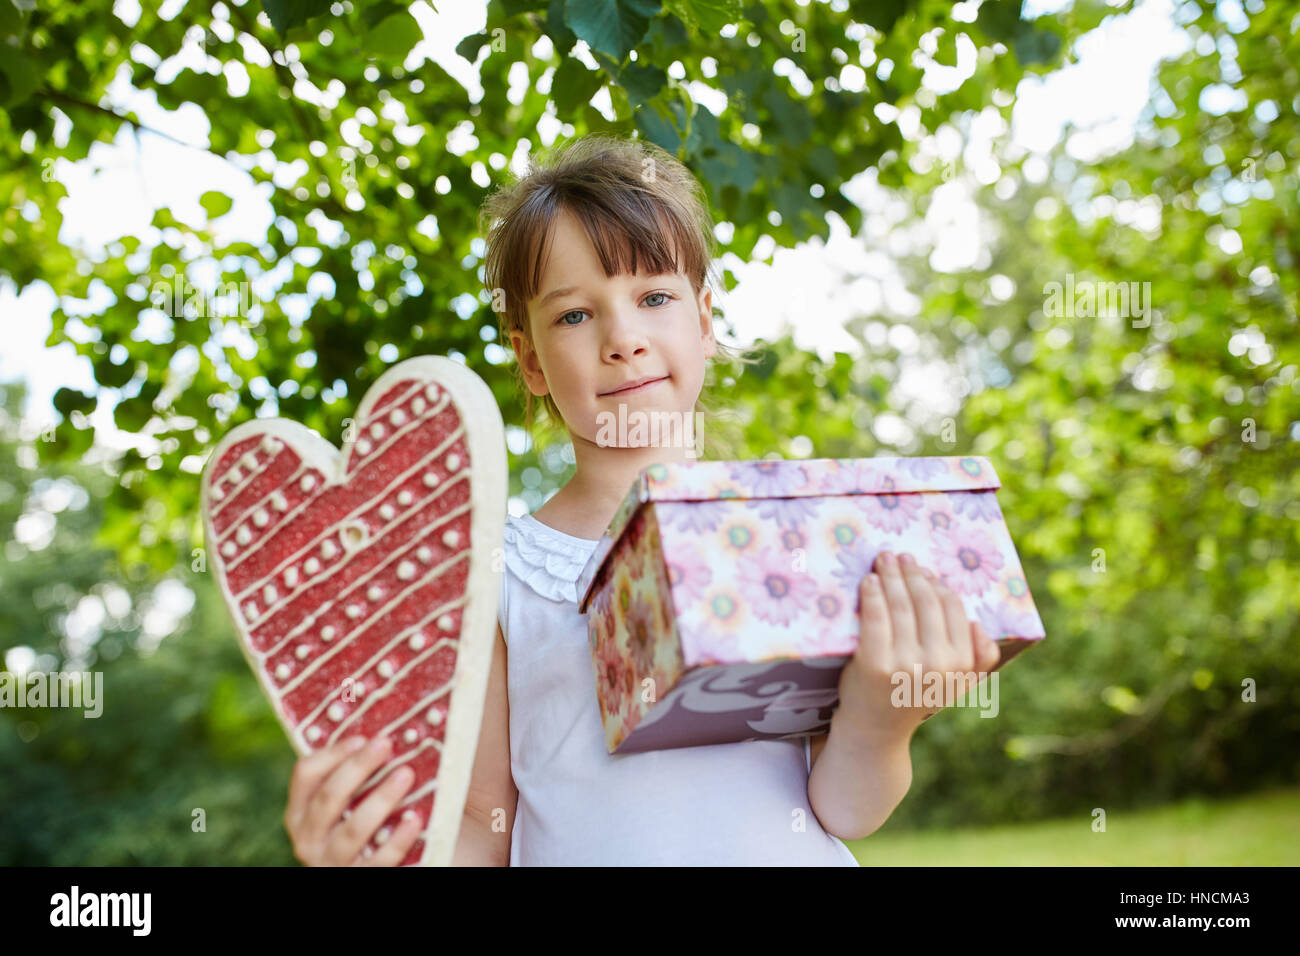 Child with birthday gift as a surprise at birthday party - Stock Image